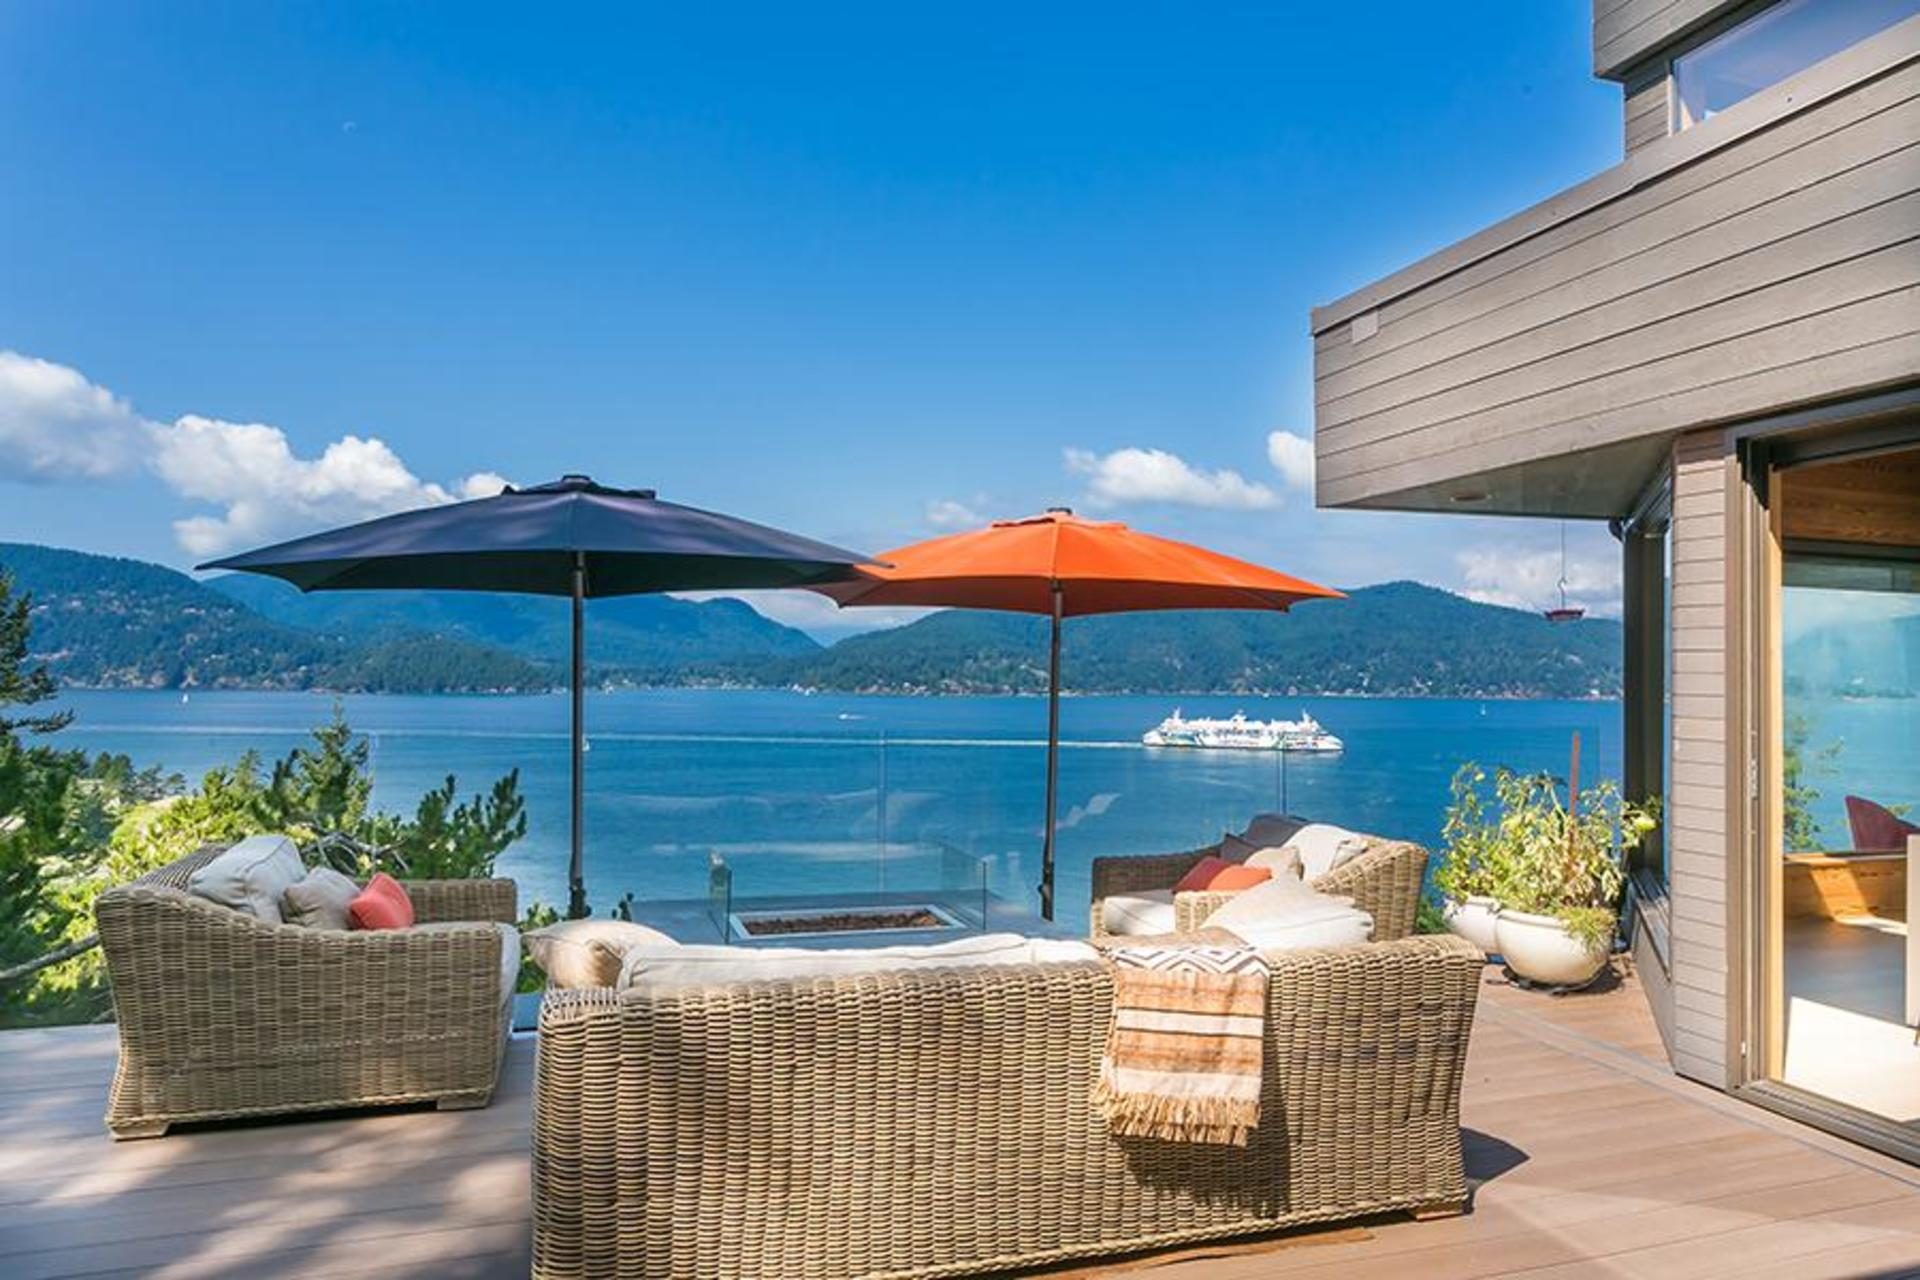 Patio with ocean view at 6995 Hycroft, Whytecliff, West Vancouver